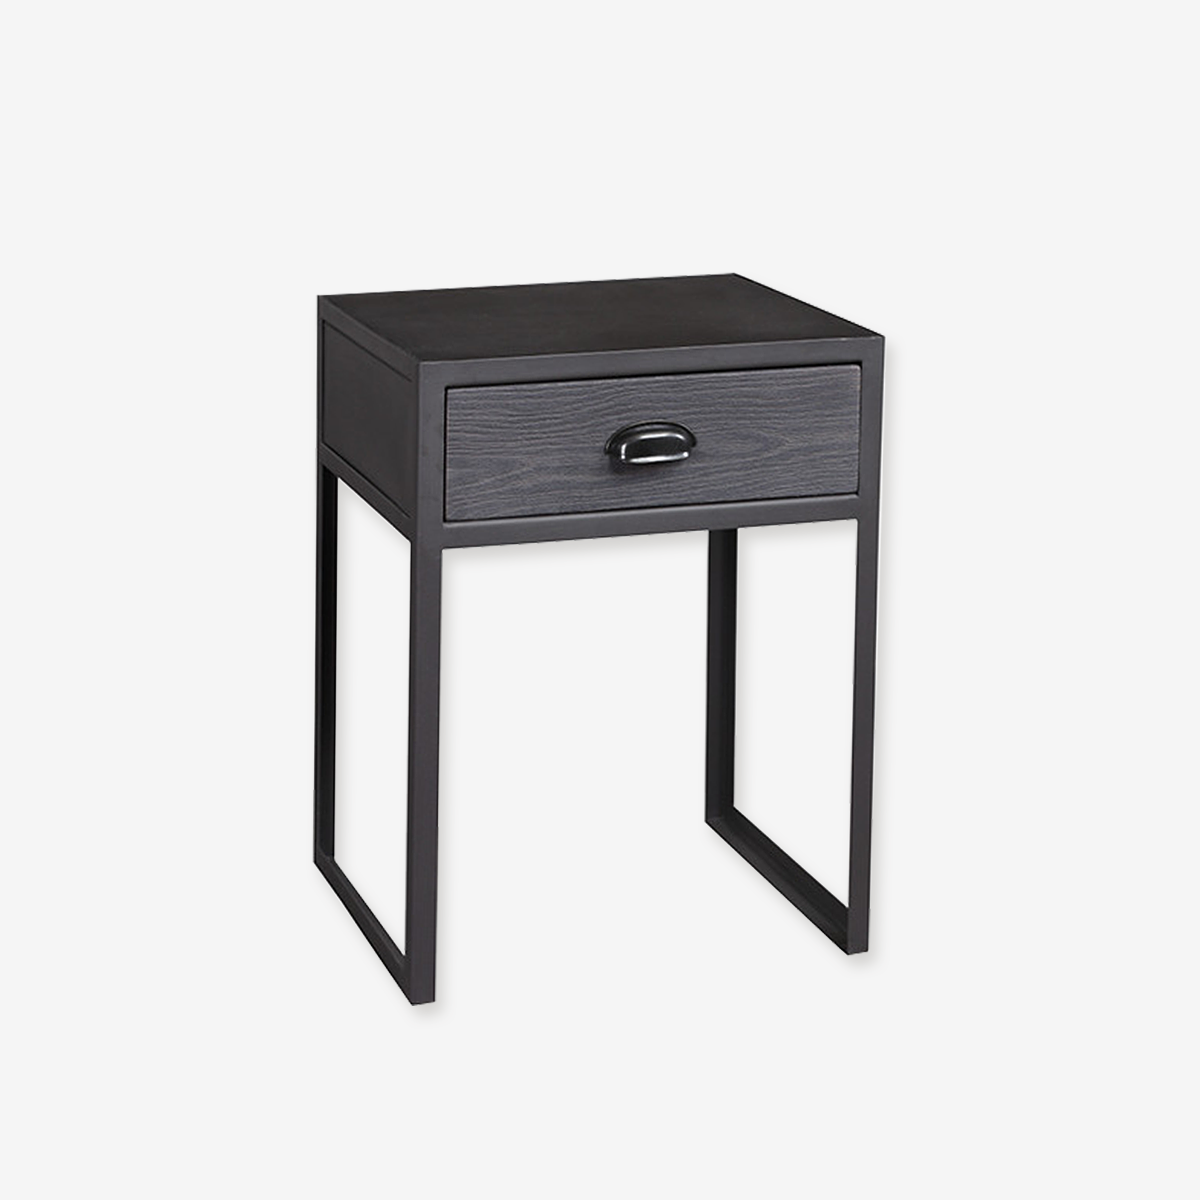 URBAN EDGE BEDSIDE TABLE | NEW